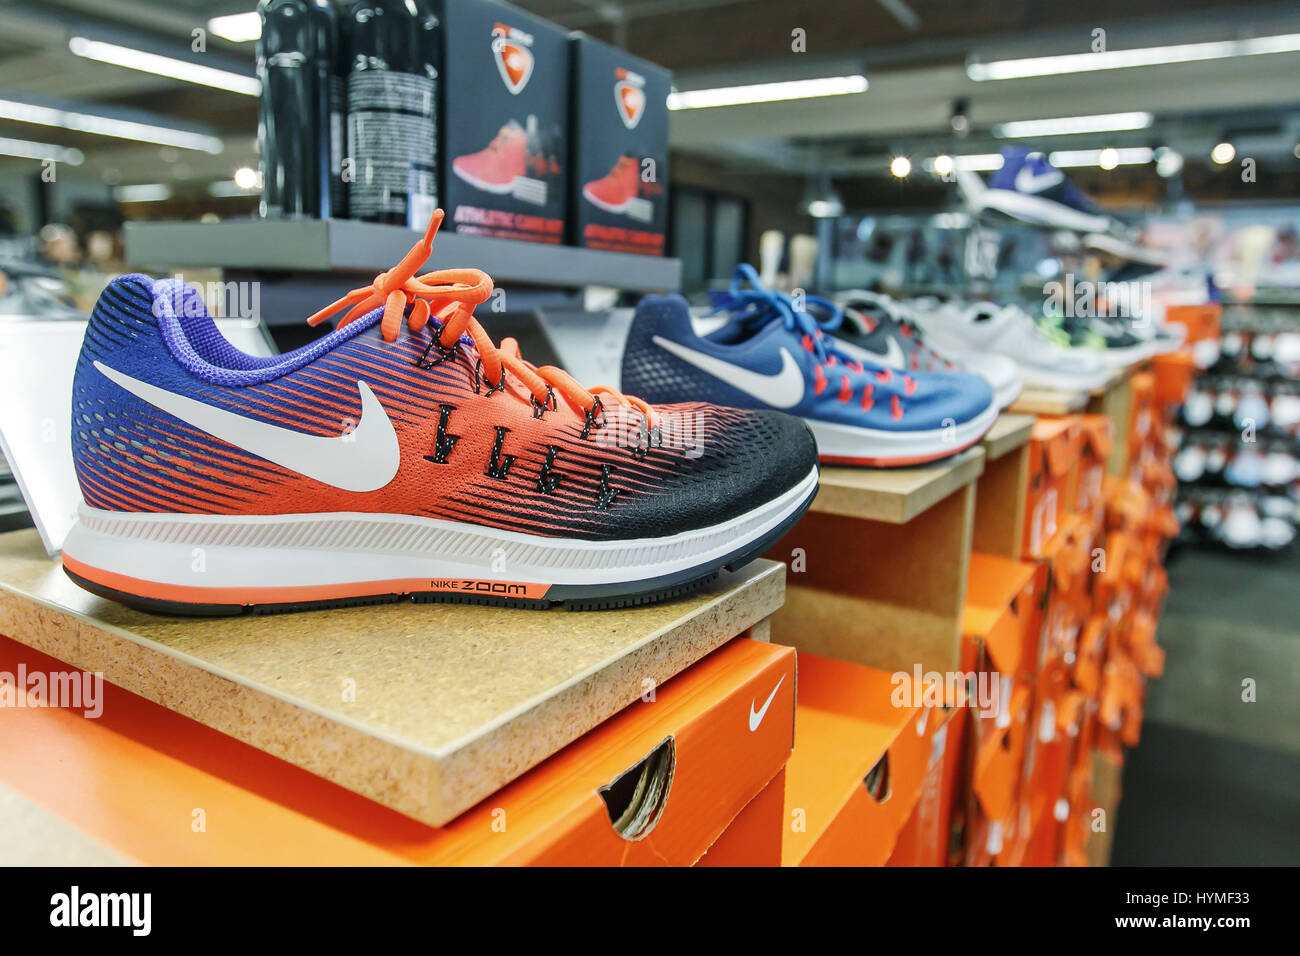 nike-shoes-are-set-on-display-in-a-shoe-